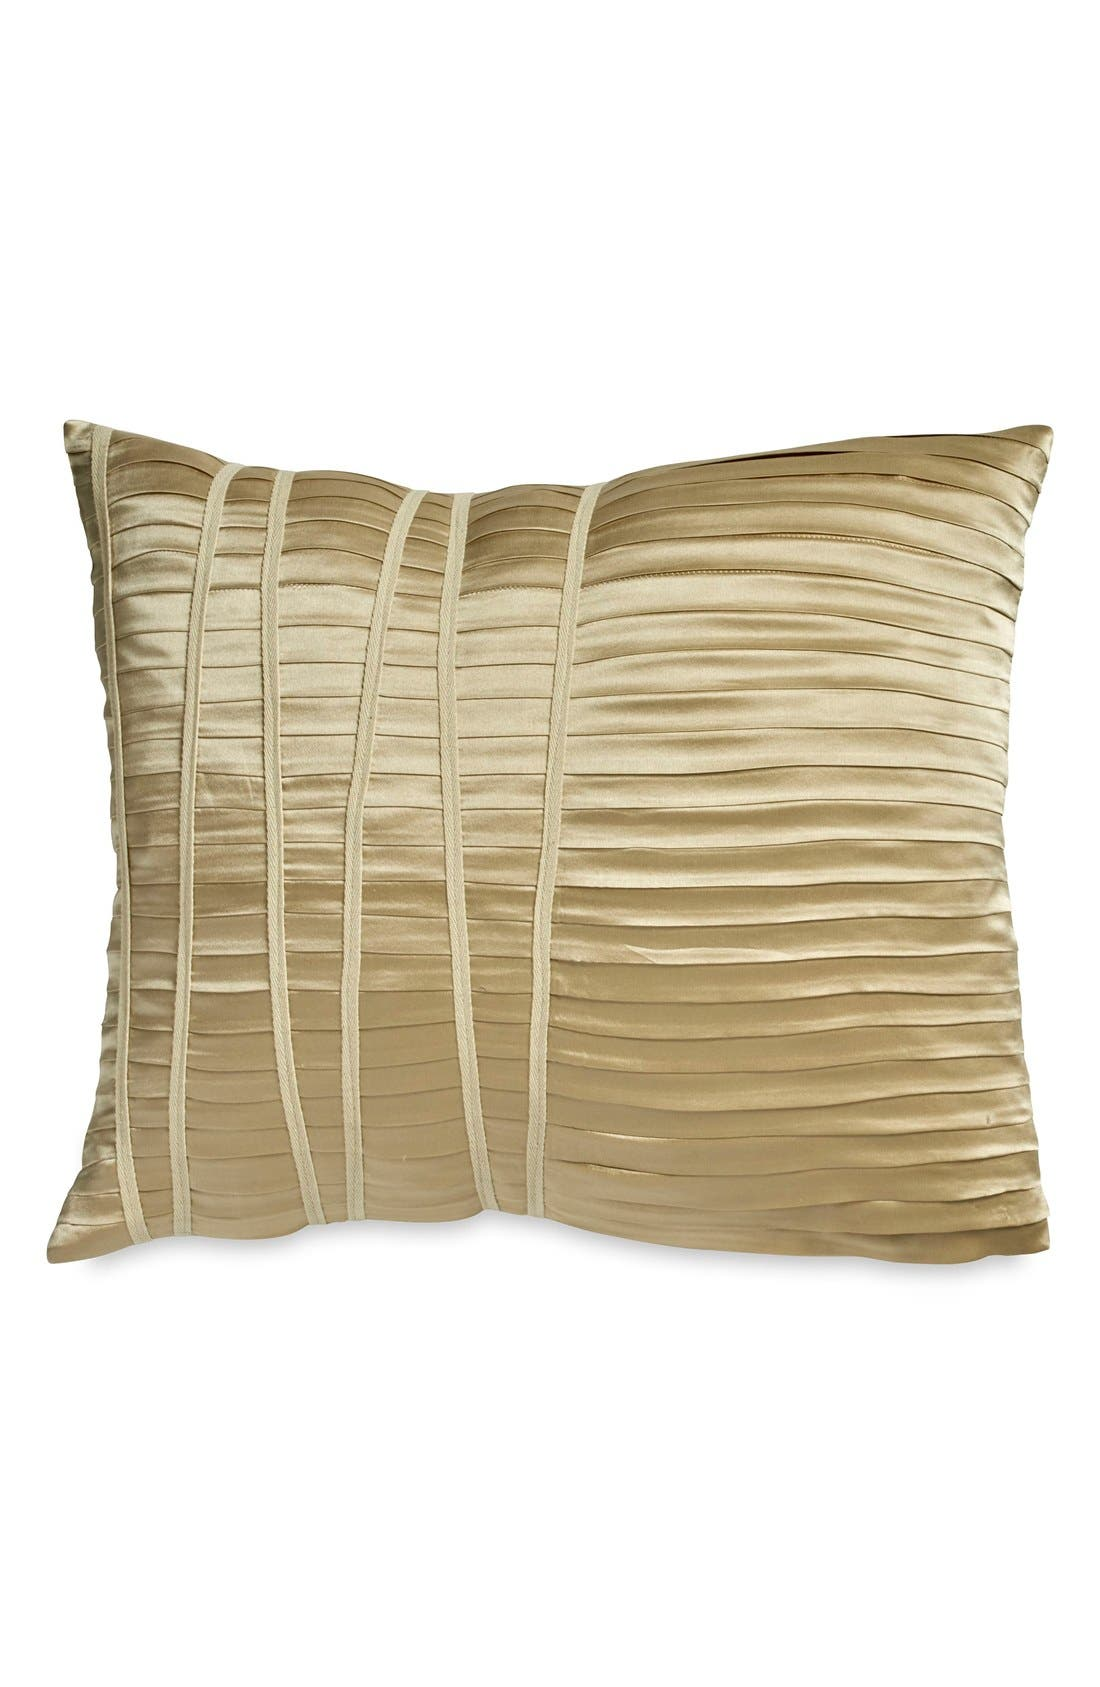 Donna Karan Collection 'Reflection' Accent Pillow,                             Main thumbnail 1, color,                             GOLD DUST